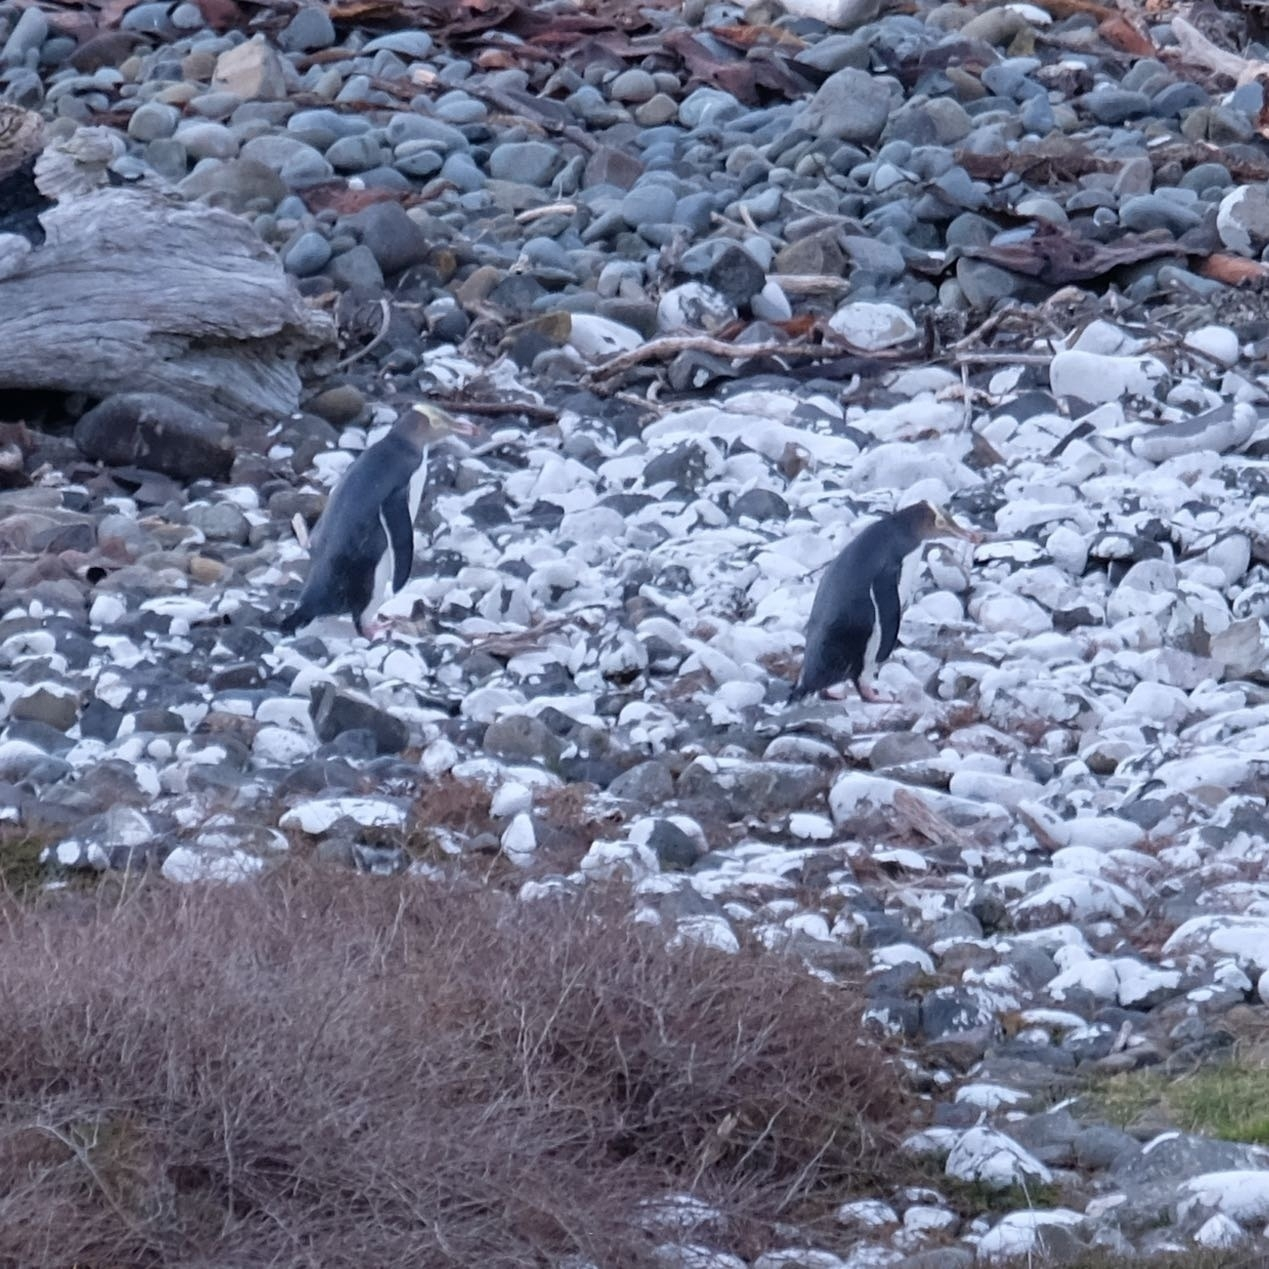 Two yellow-eyed penguins on a beach.